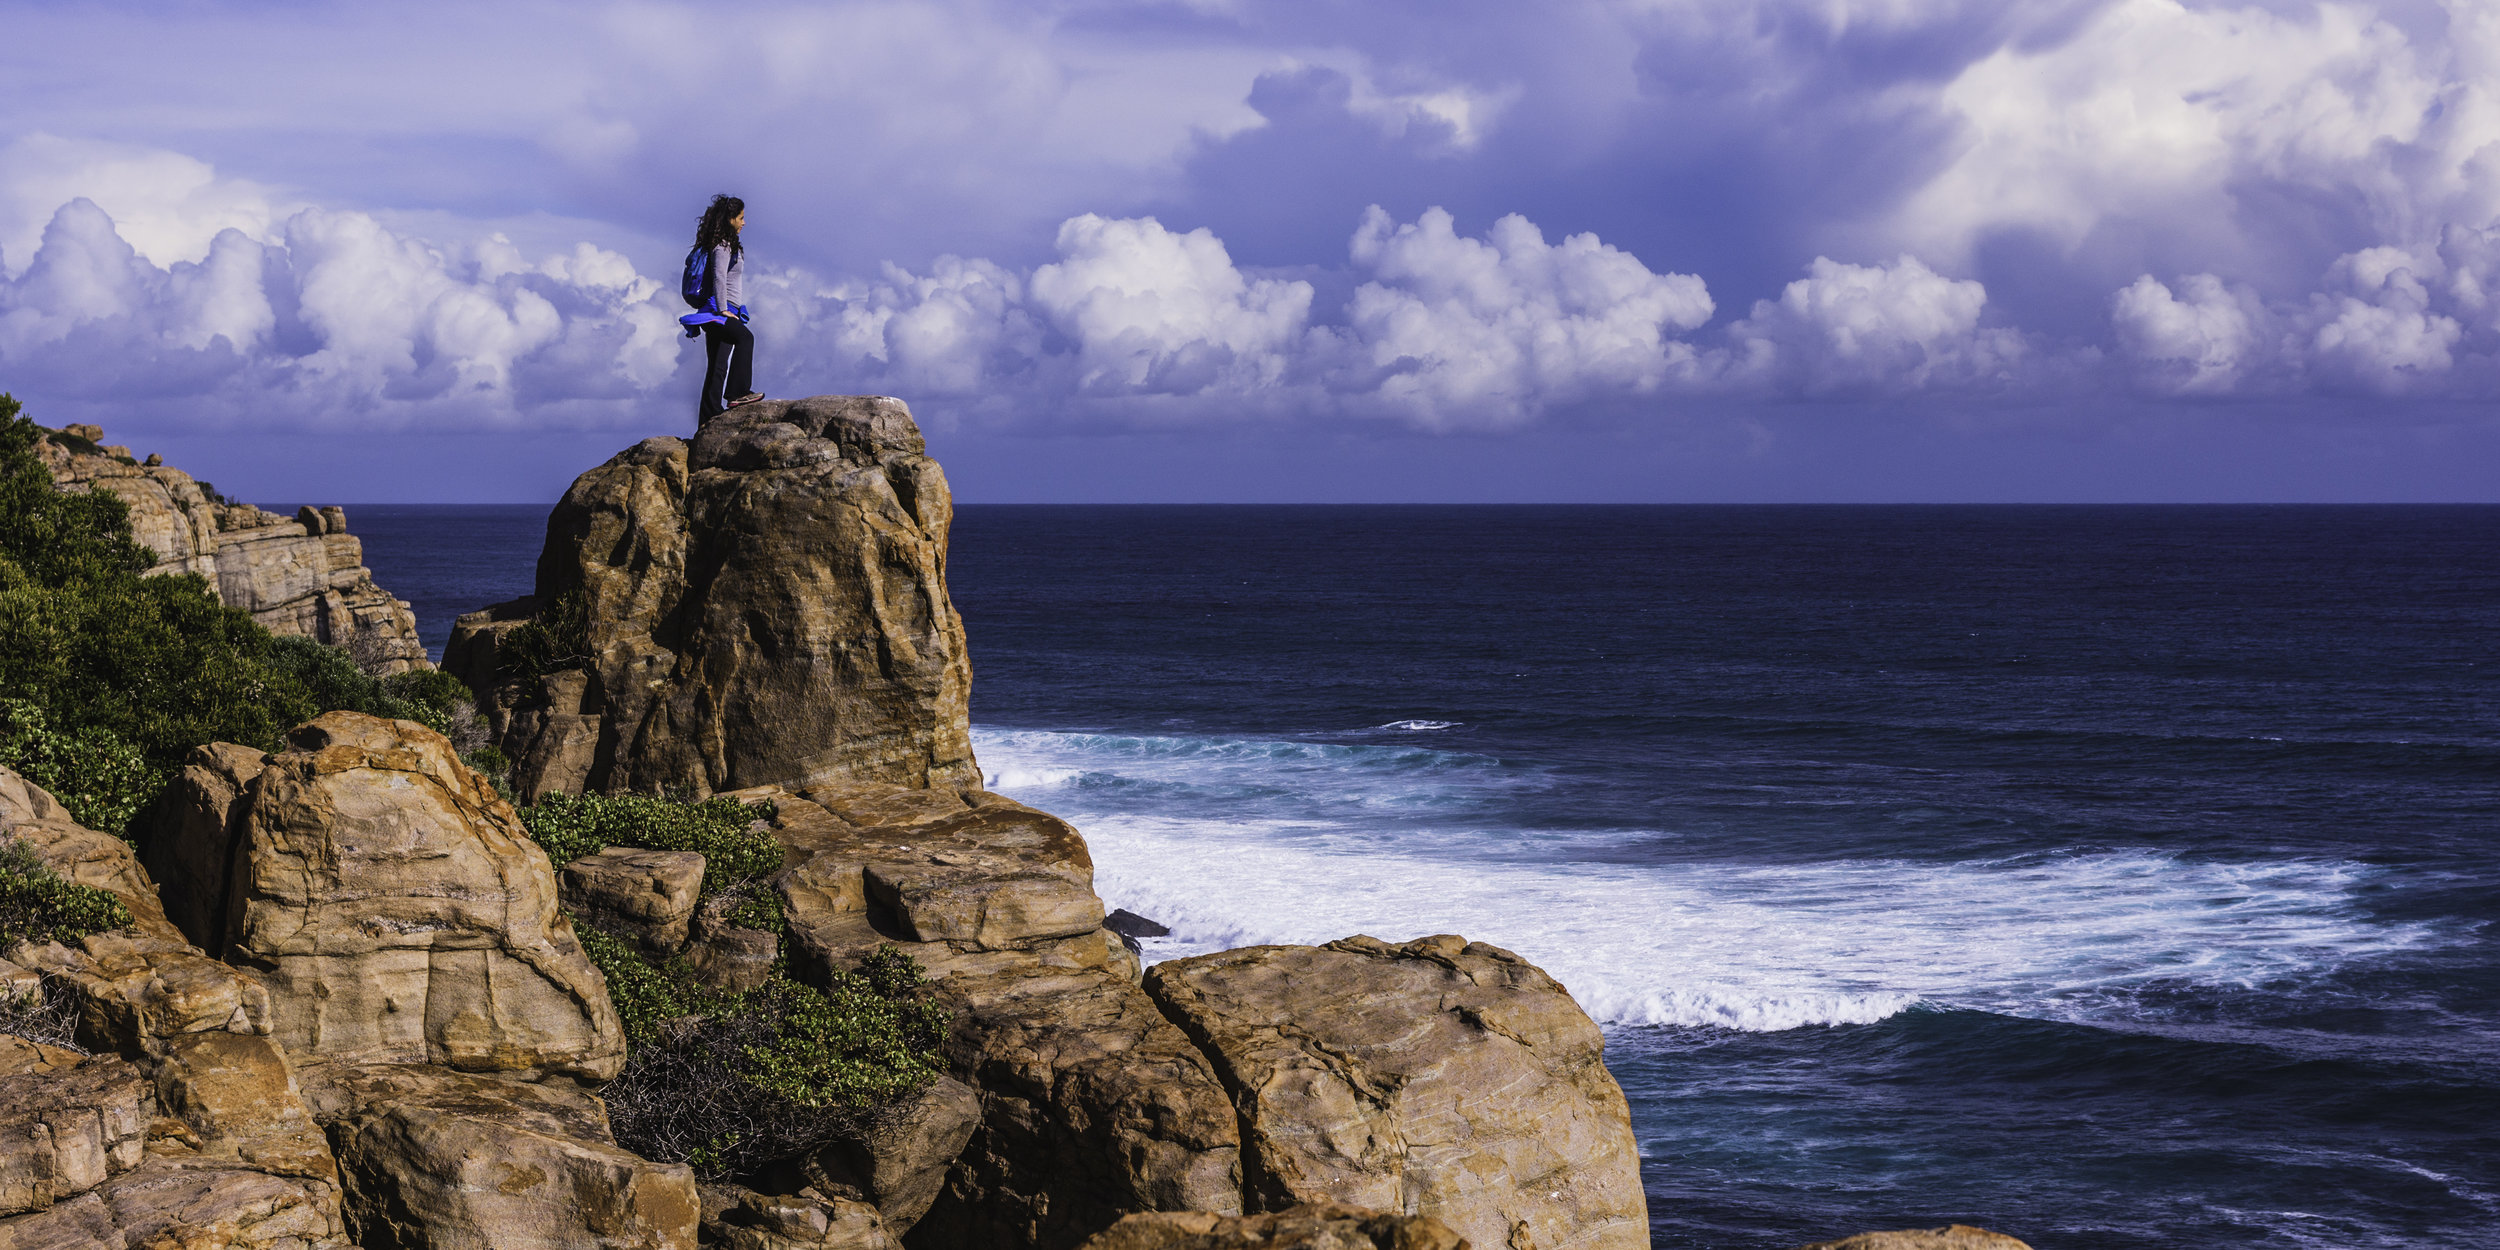 Looking at the big picture on the Cape to Cape Track - southwest Western Australia